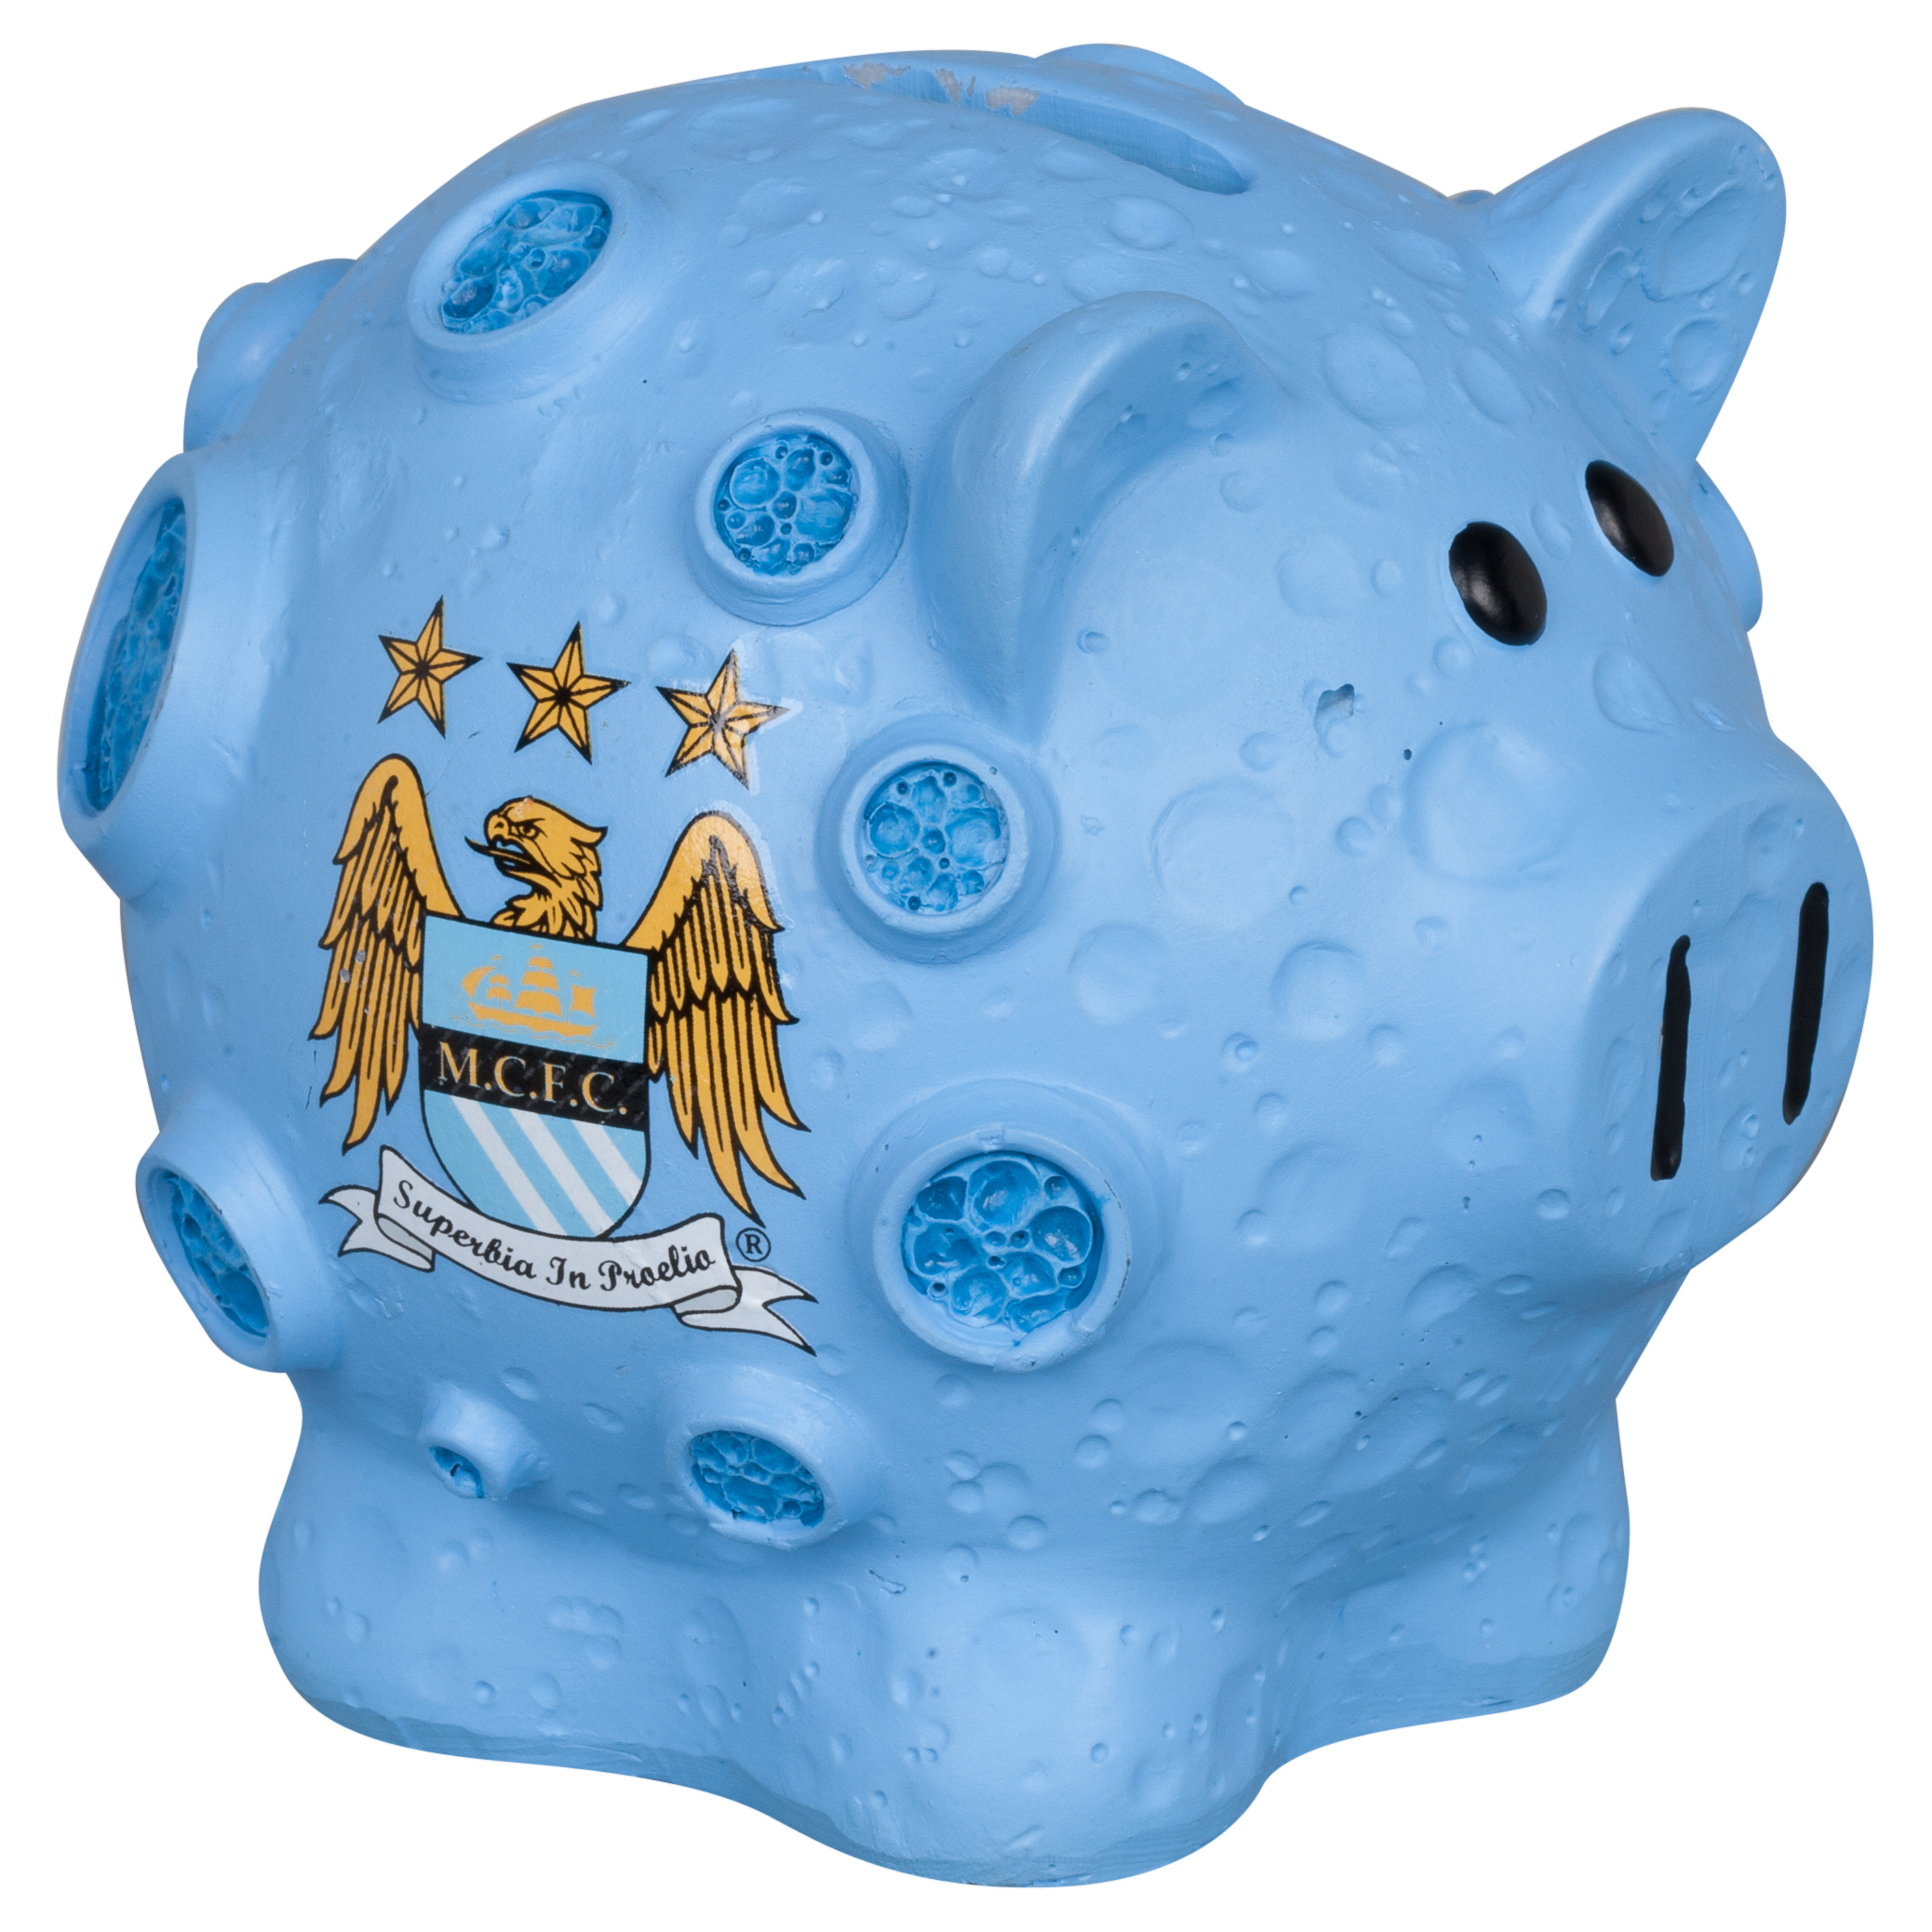 Manchester City Blue Moon Small Piggy Bank - 4x4inch